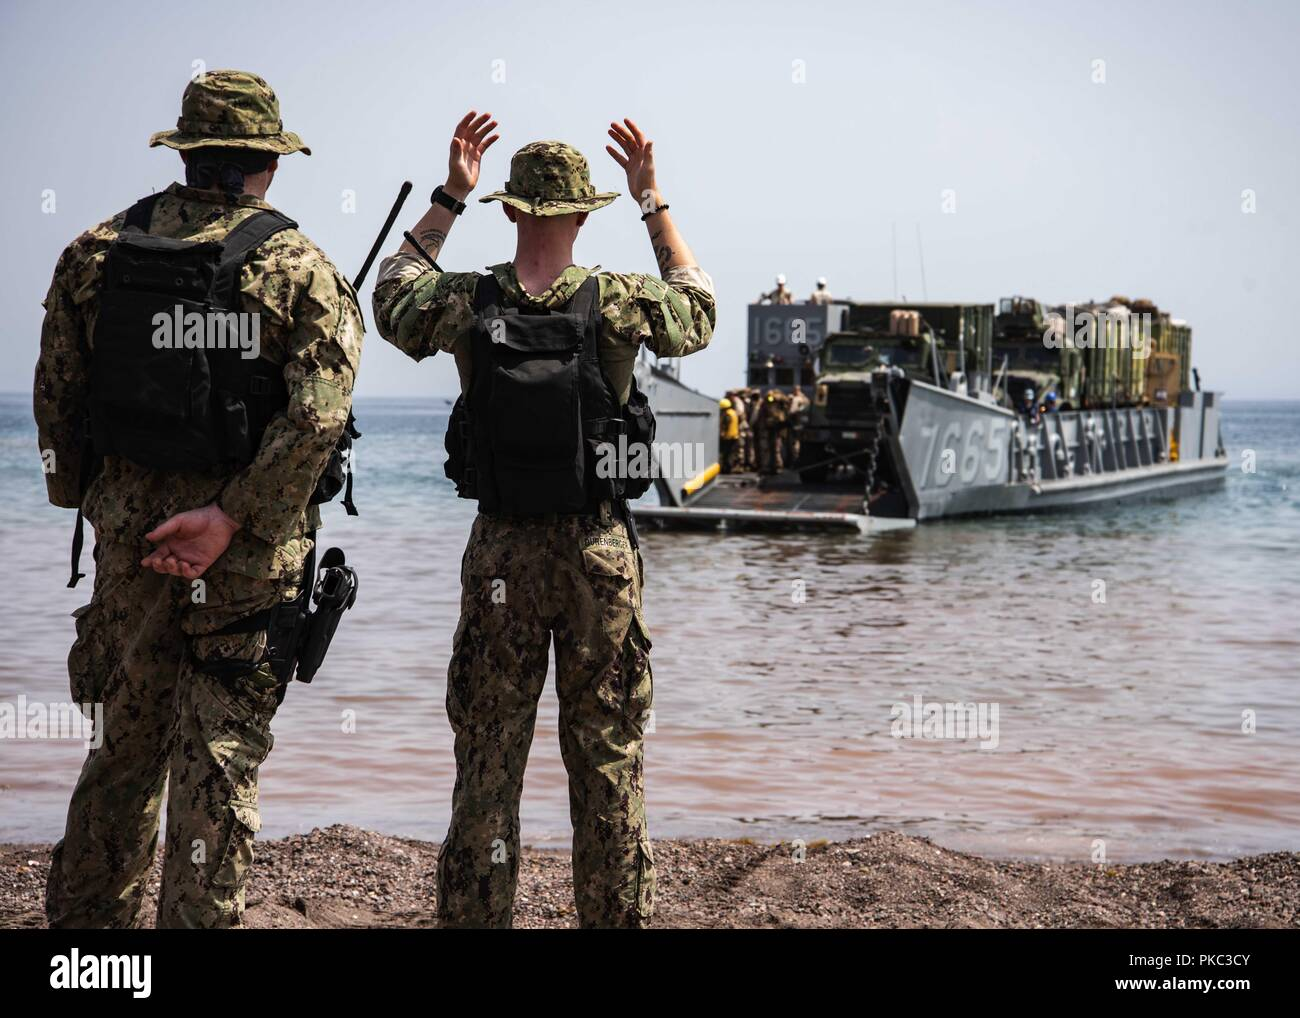 Djibouti. 8th Mar, 2018. DJIBOUTI (Sept. 8, 2018) Engineman Fireman Cory Durenberger, assigned to Beach Master Unit (BMU) 1, signals a landing craft utility while participating in Theater Amphibious Combat Rehearsal (TACR) 18. Led by Naval Amphibious Force, Task Force 51/5th Marine Expeditionary Brigade, TACR integrates U.S. Navy and Marine Corps assets to practice and rehearse a range of critical combat-related capabilities available to U.S. Central Command, both afloat and ashore, to promote stability and security in the region. U.S. 5th Fleet and coalition assets are participating in nume Stock Photo